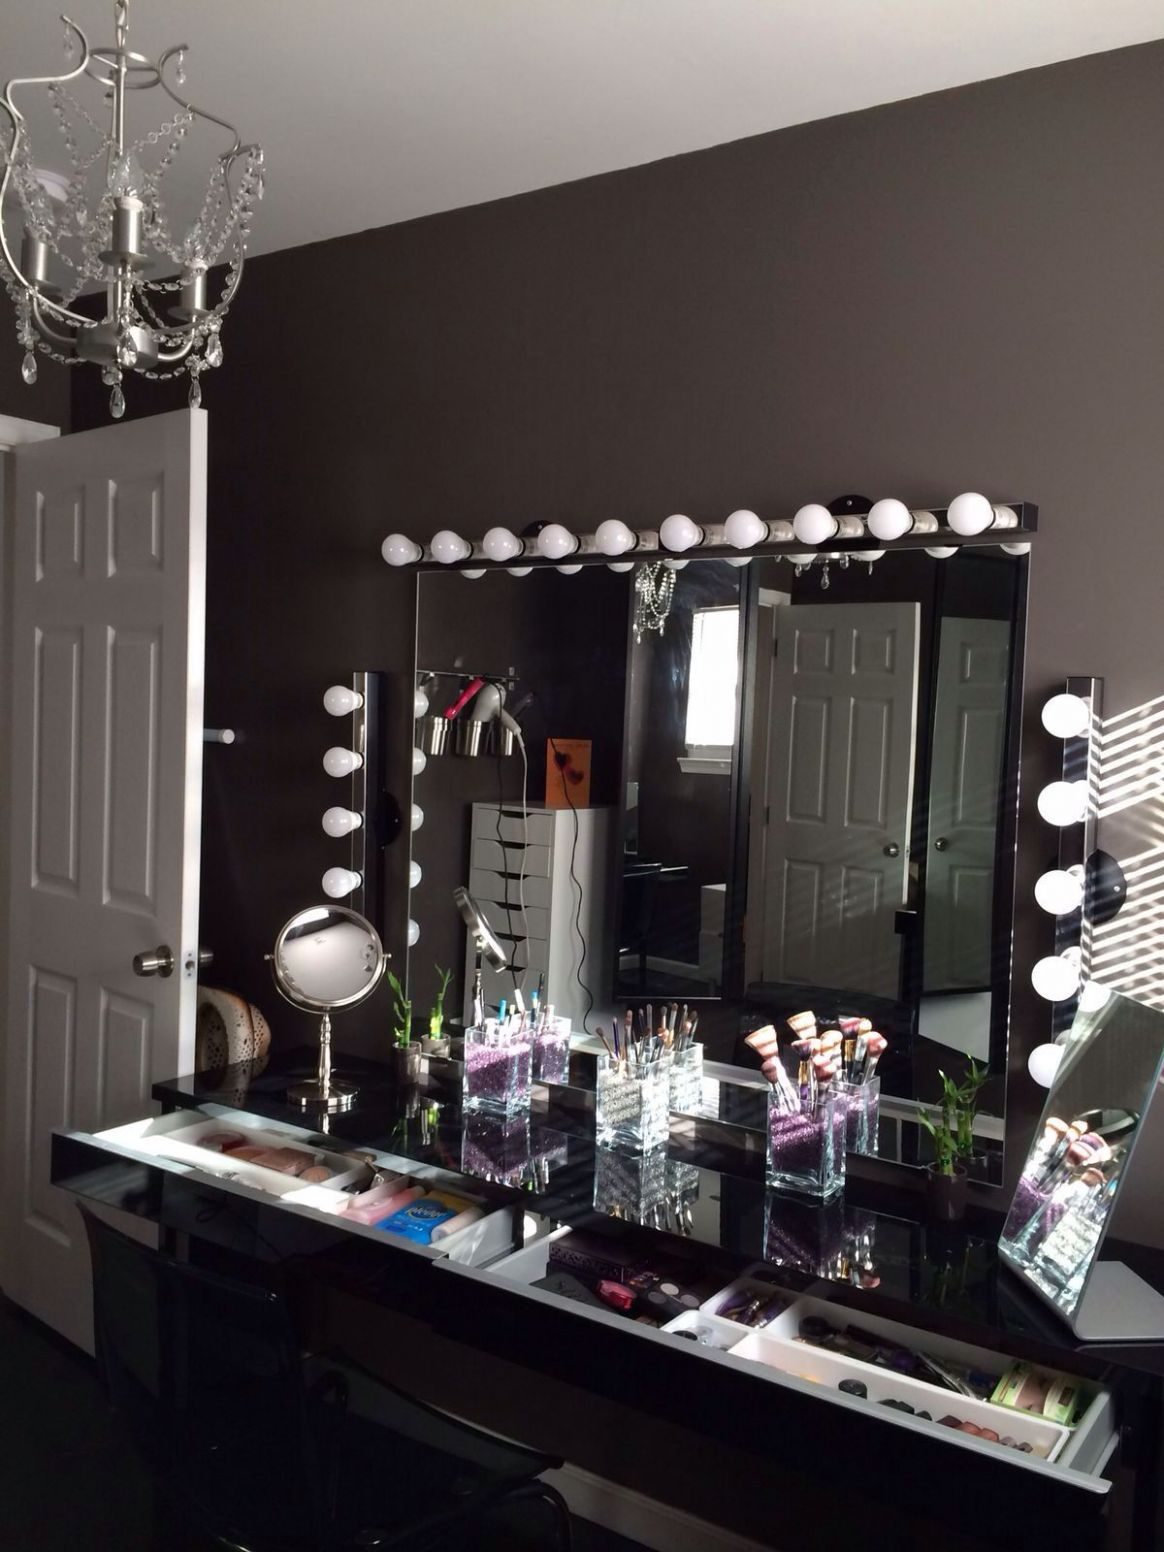 DOWNLOAD The Beauty Room LOOK BOOK For GLAM Home Décor And Makeup ..